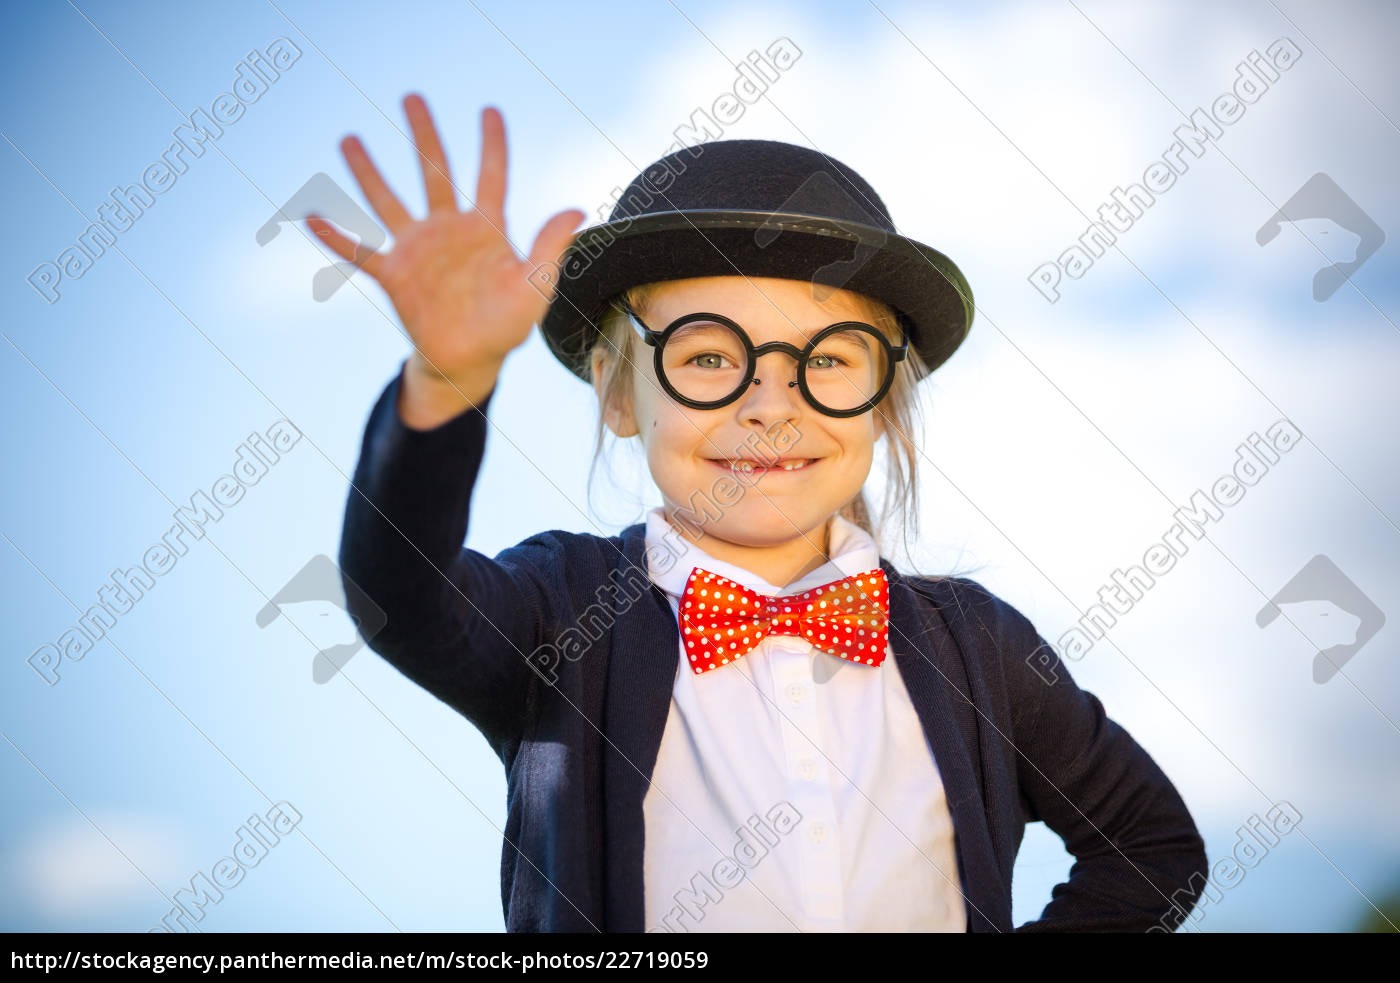 funny, little, girl, in, bow, tie - 22719059